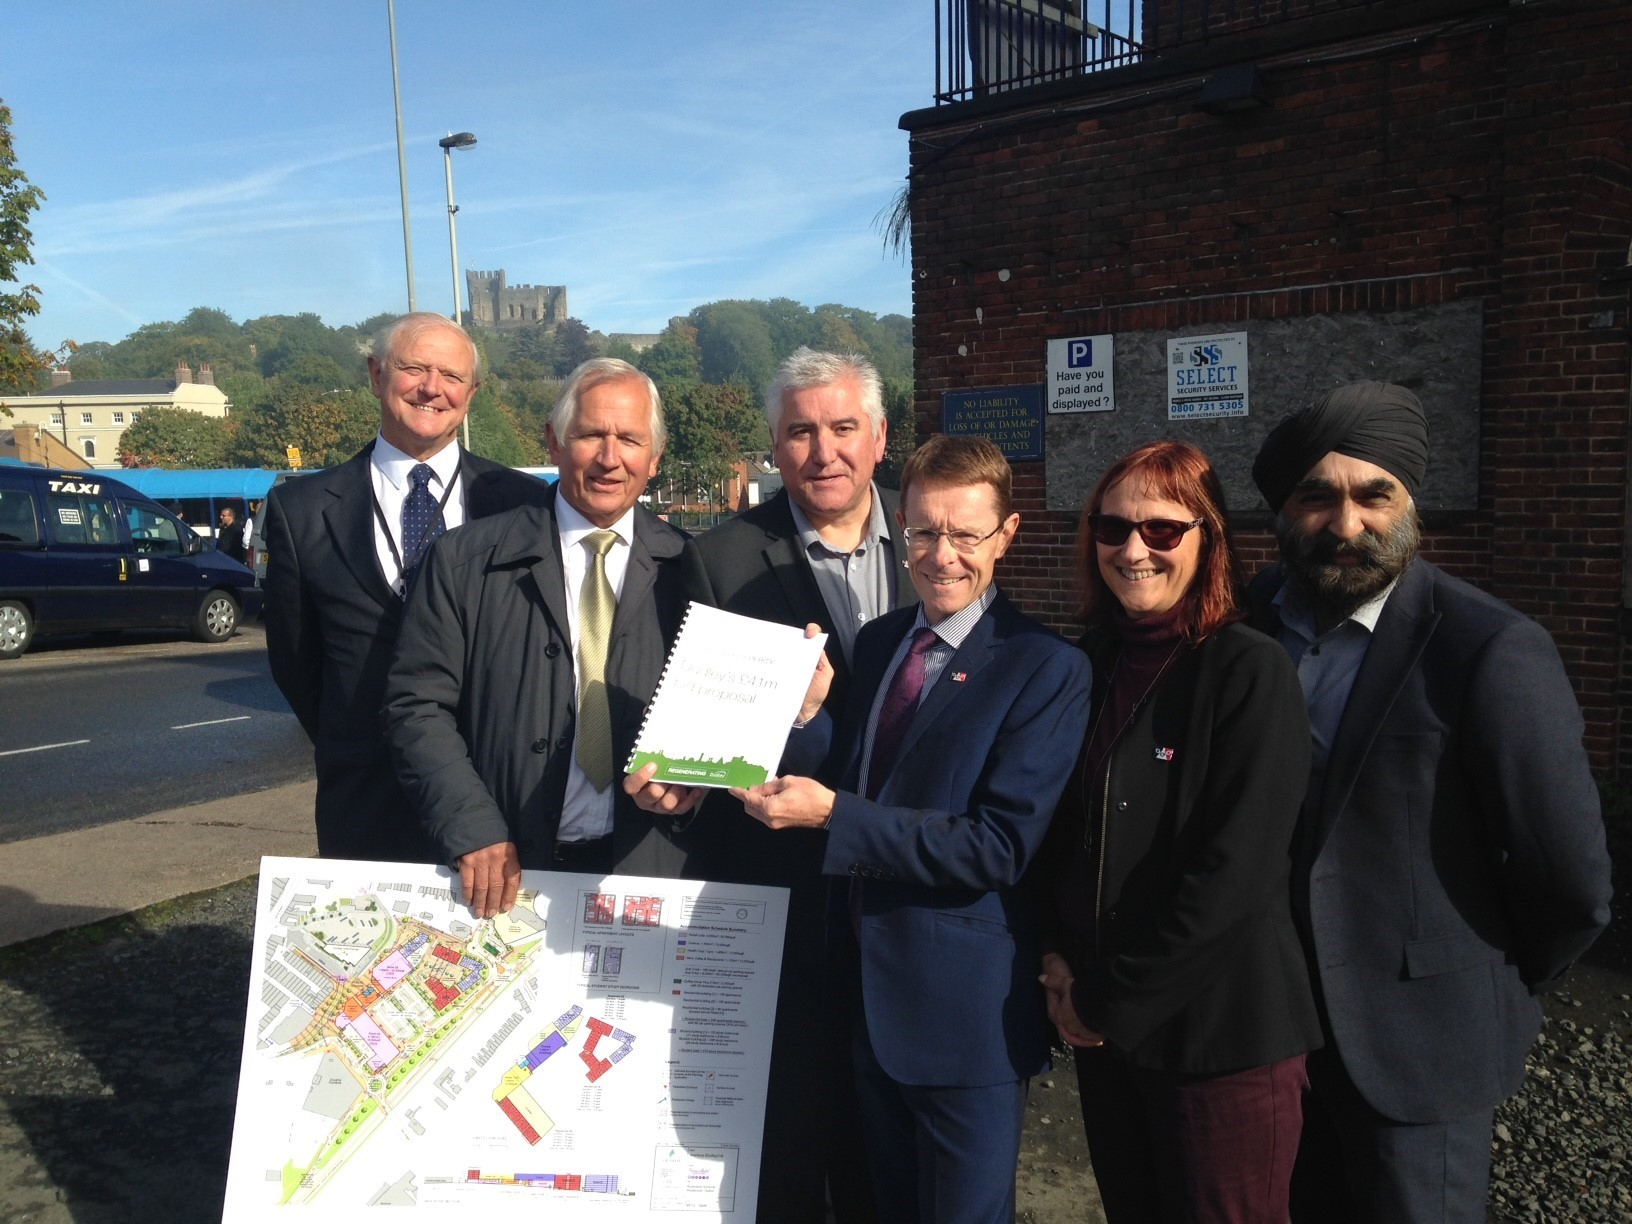 Mayor shown £41 million regeneration proposals for Dudley town centre